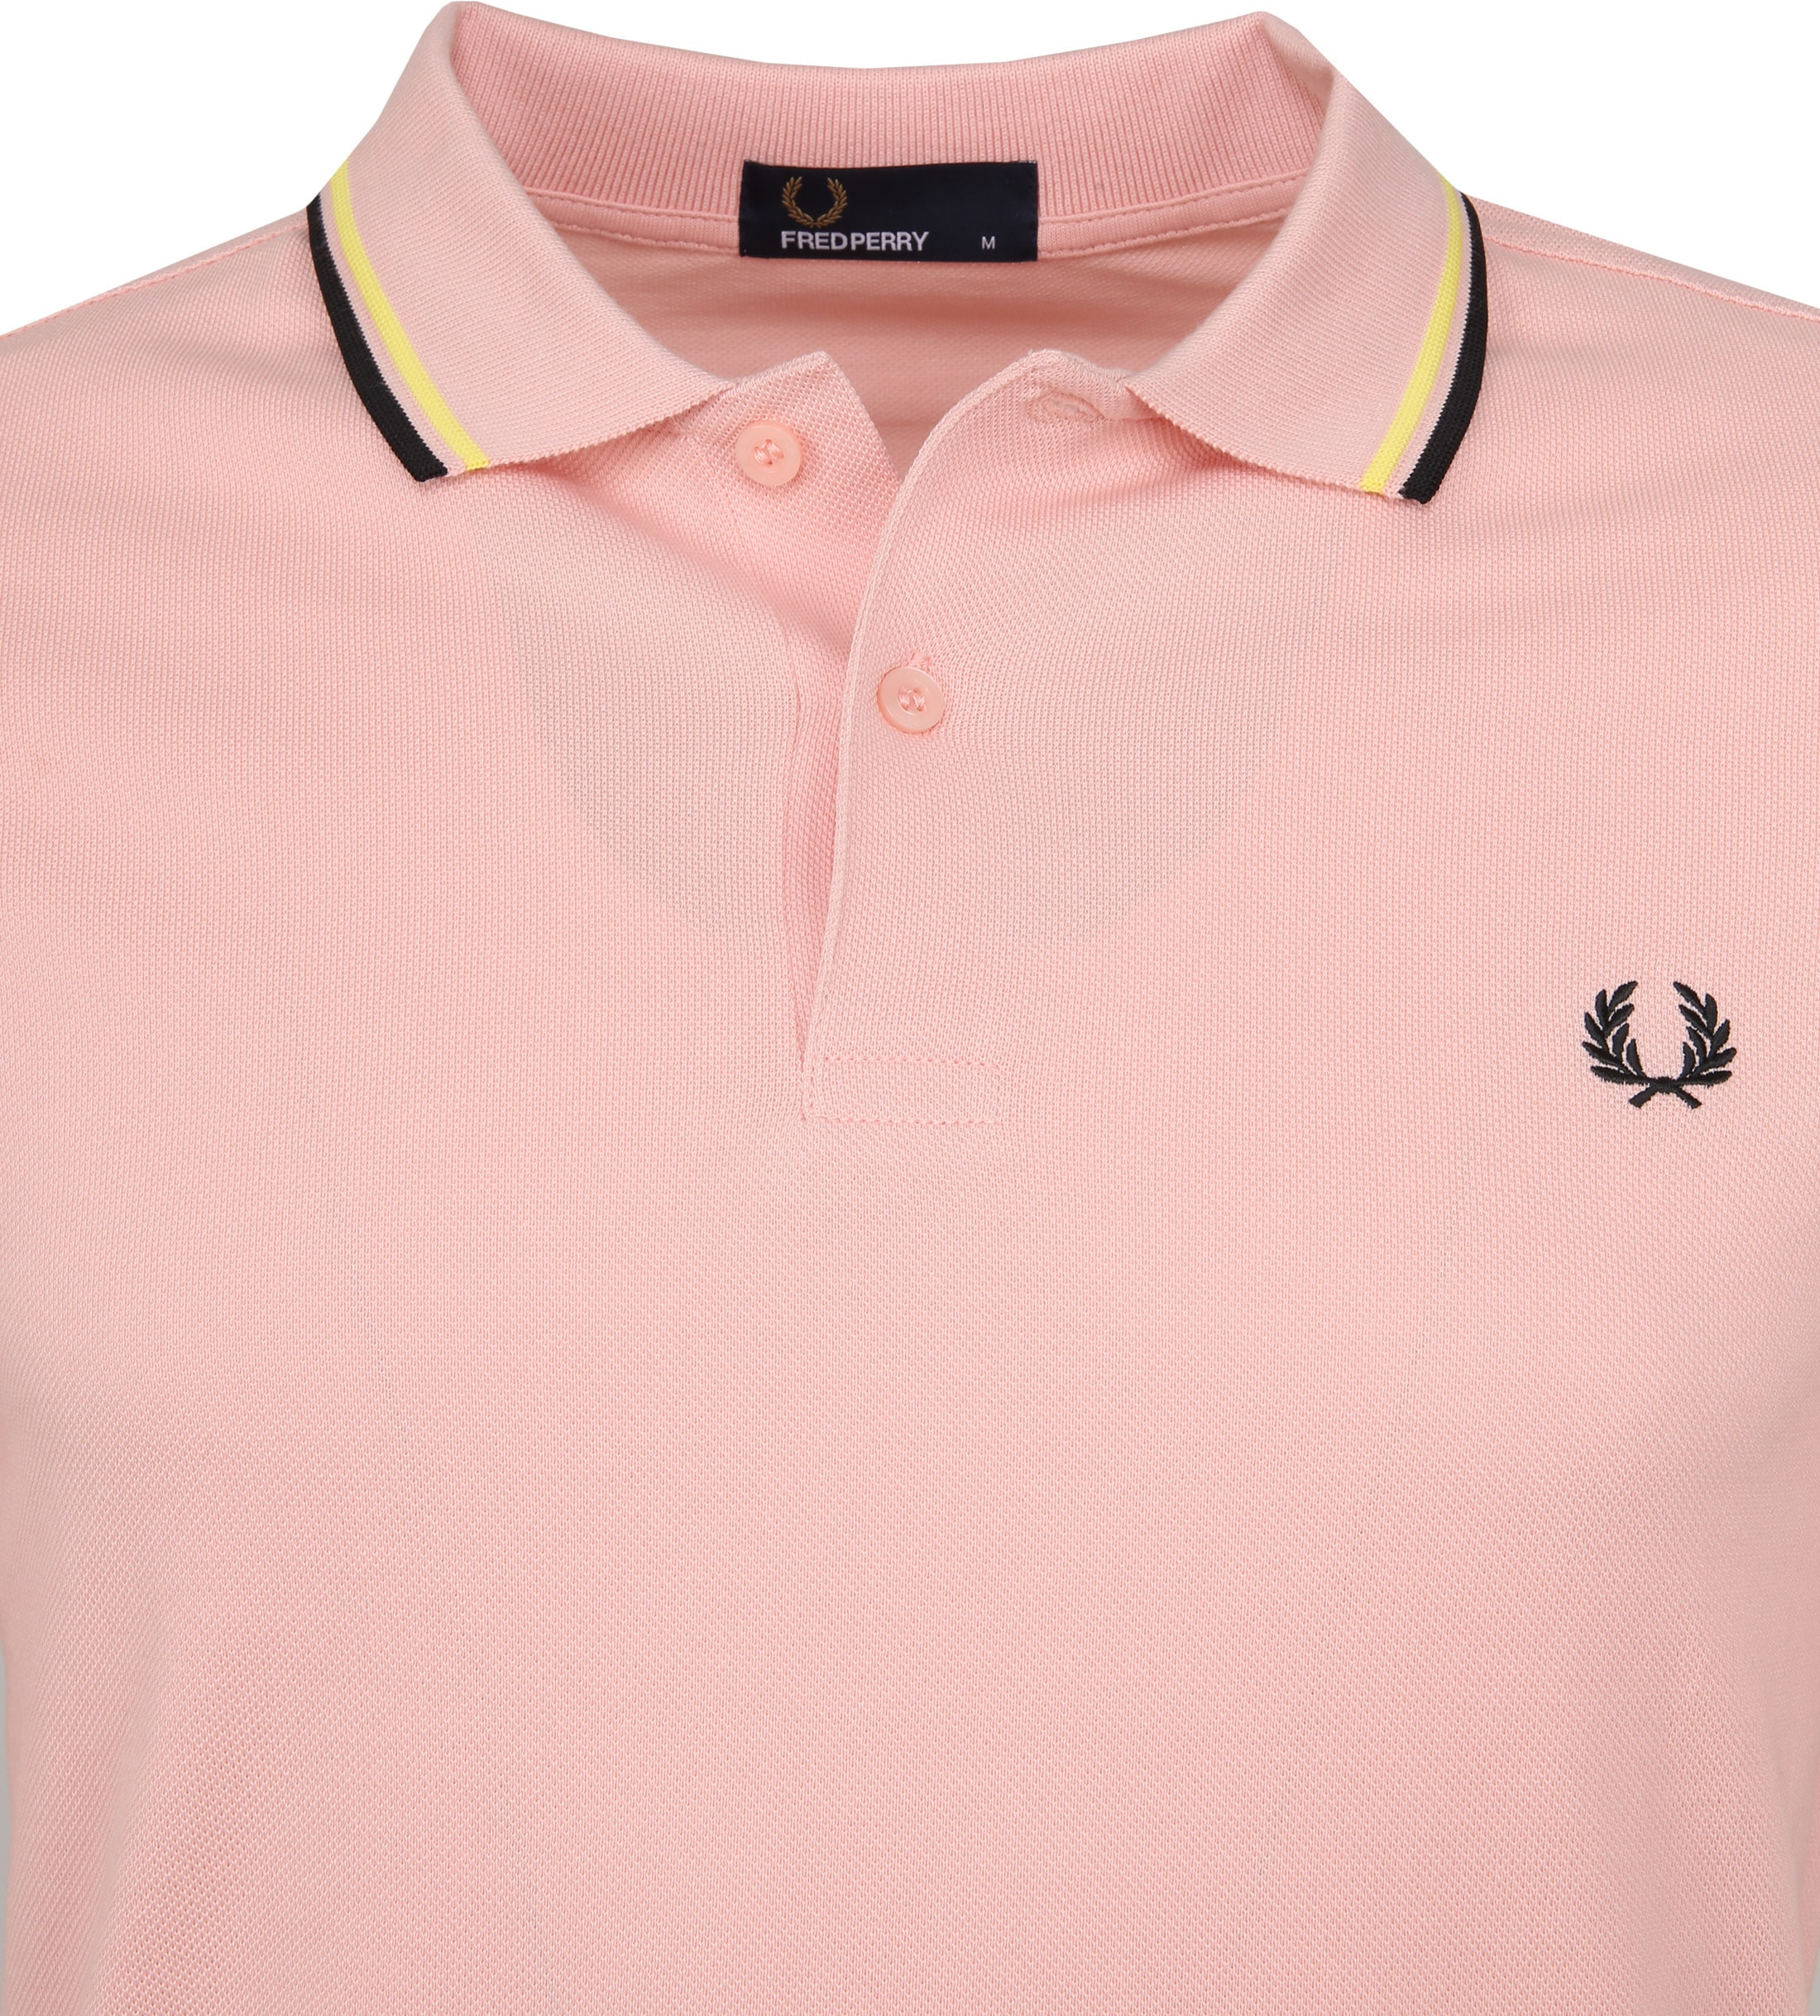 Fred Perry Polo Roze 457 foto 1